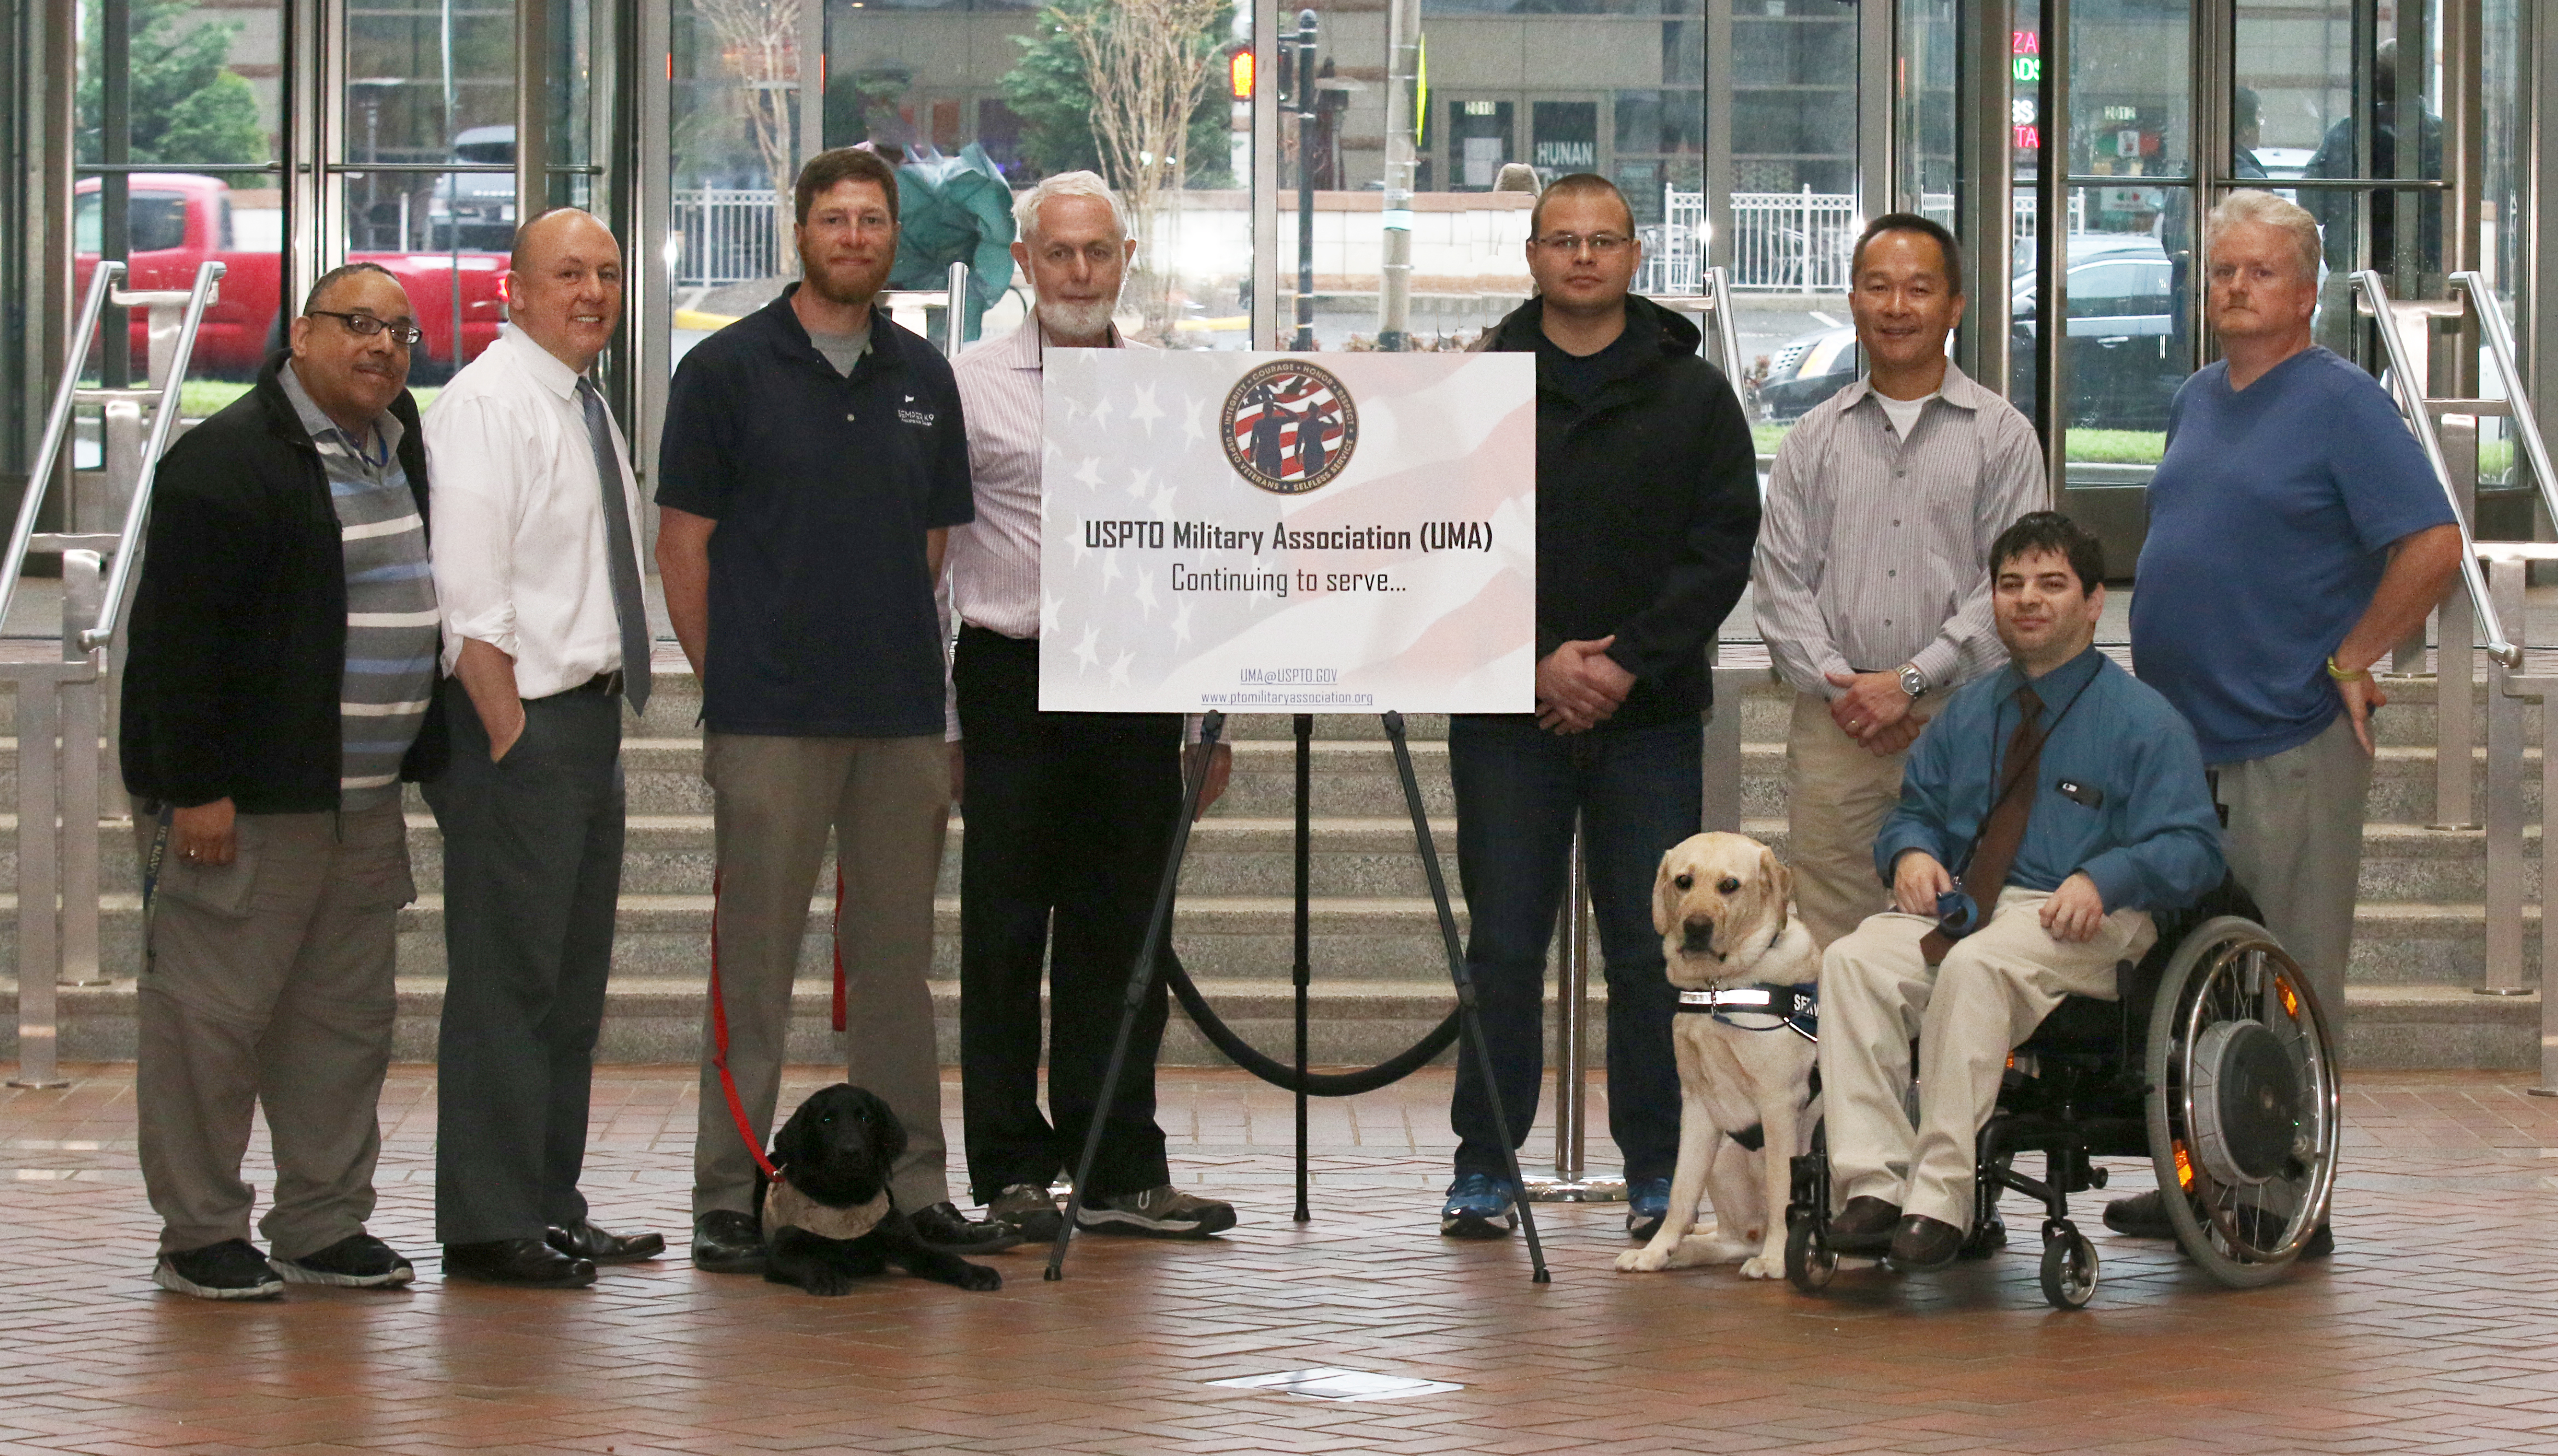 Semper K9 Assistance Dogs Visits the UMA and ResponsAbility